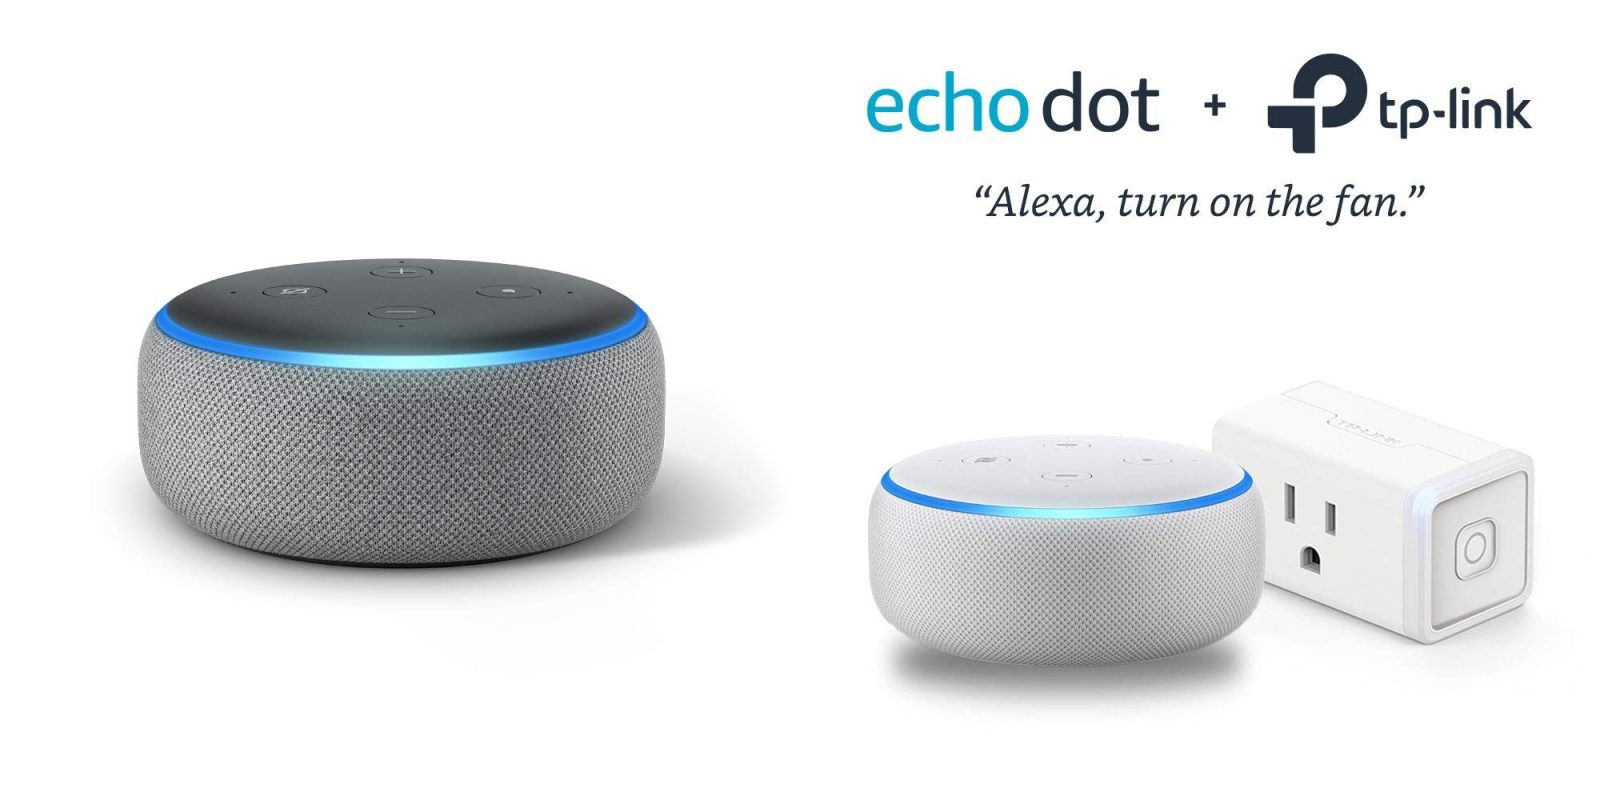 Echo Dot drops to $25, add a TP-Link smart plug for just $5 more